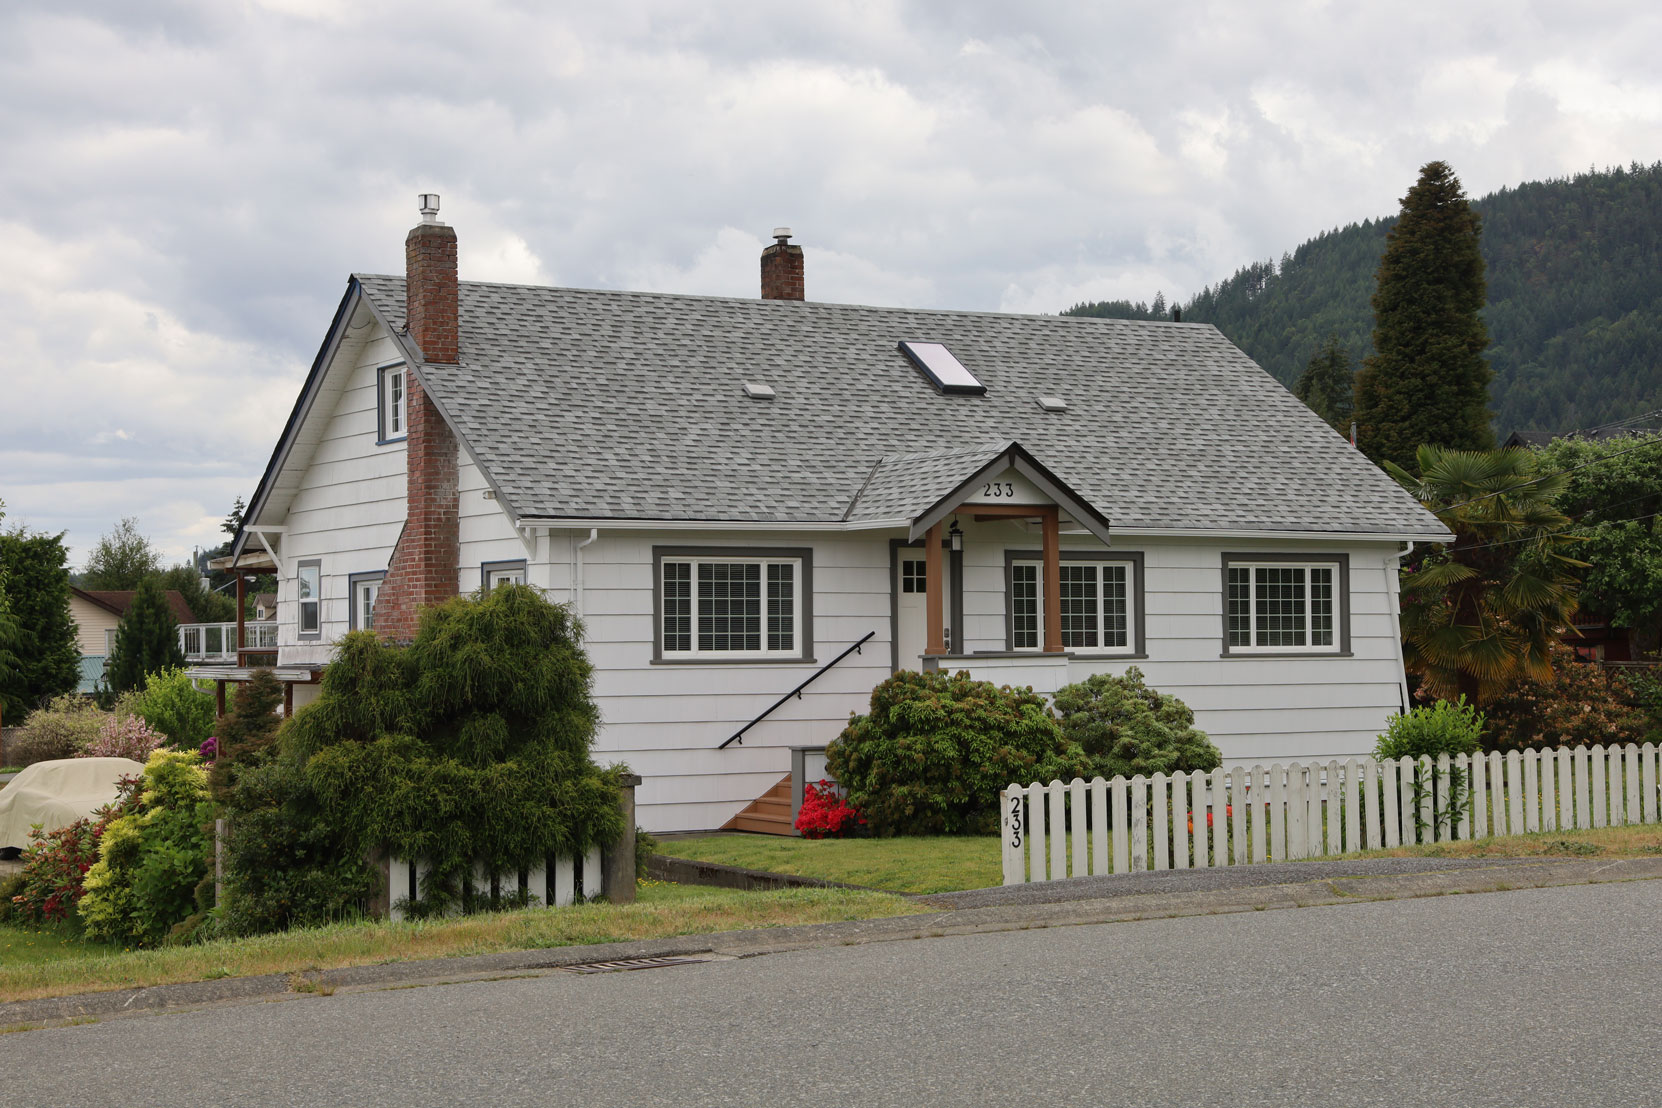 233 Methuen Street, Ladysmith, B.C., built in 1942 (photo: Mark Anderson)